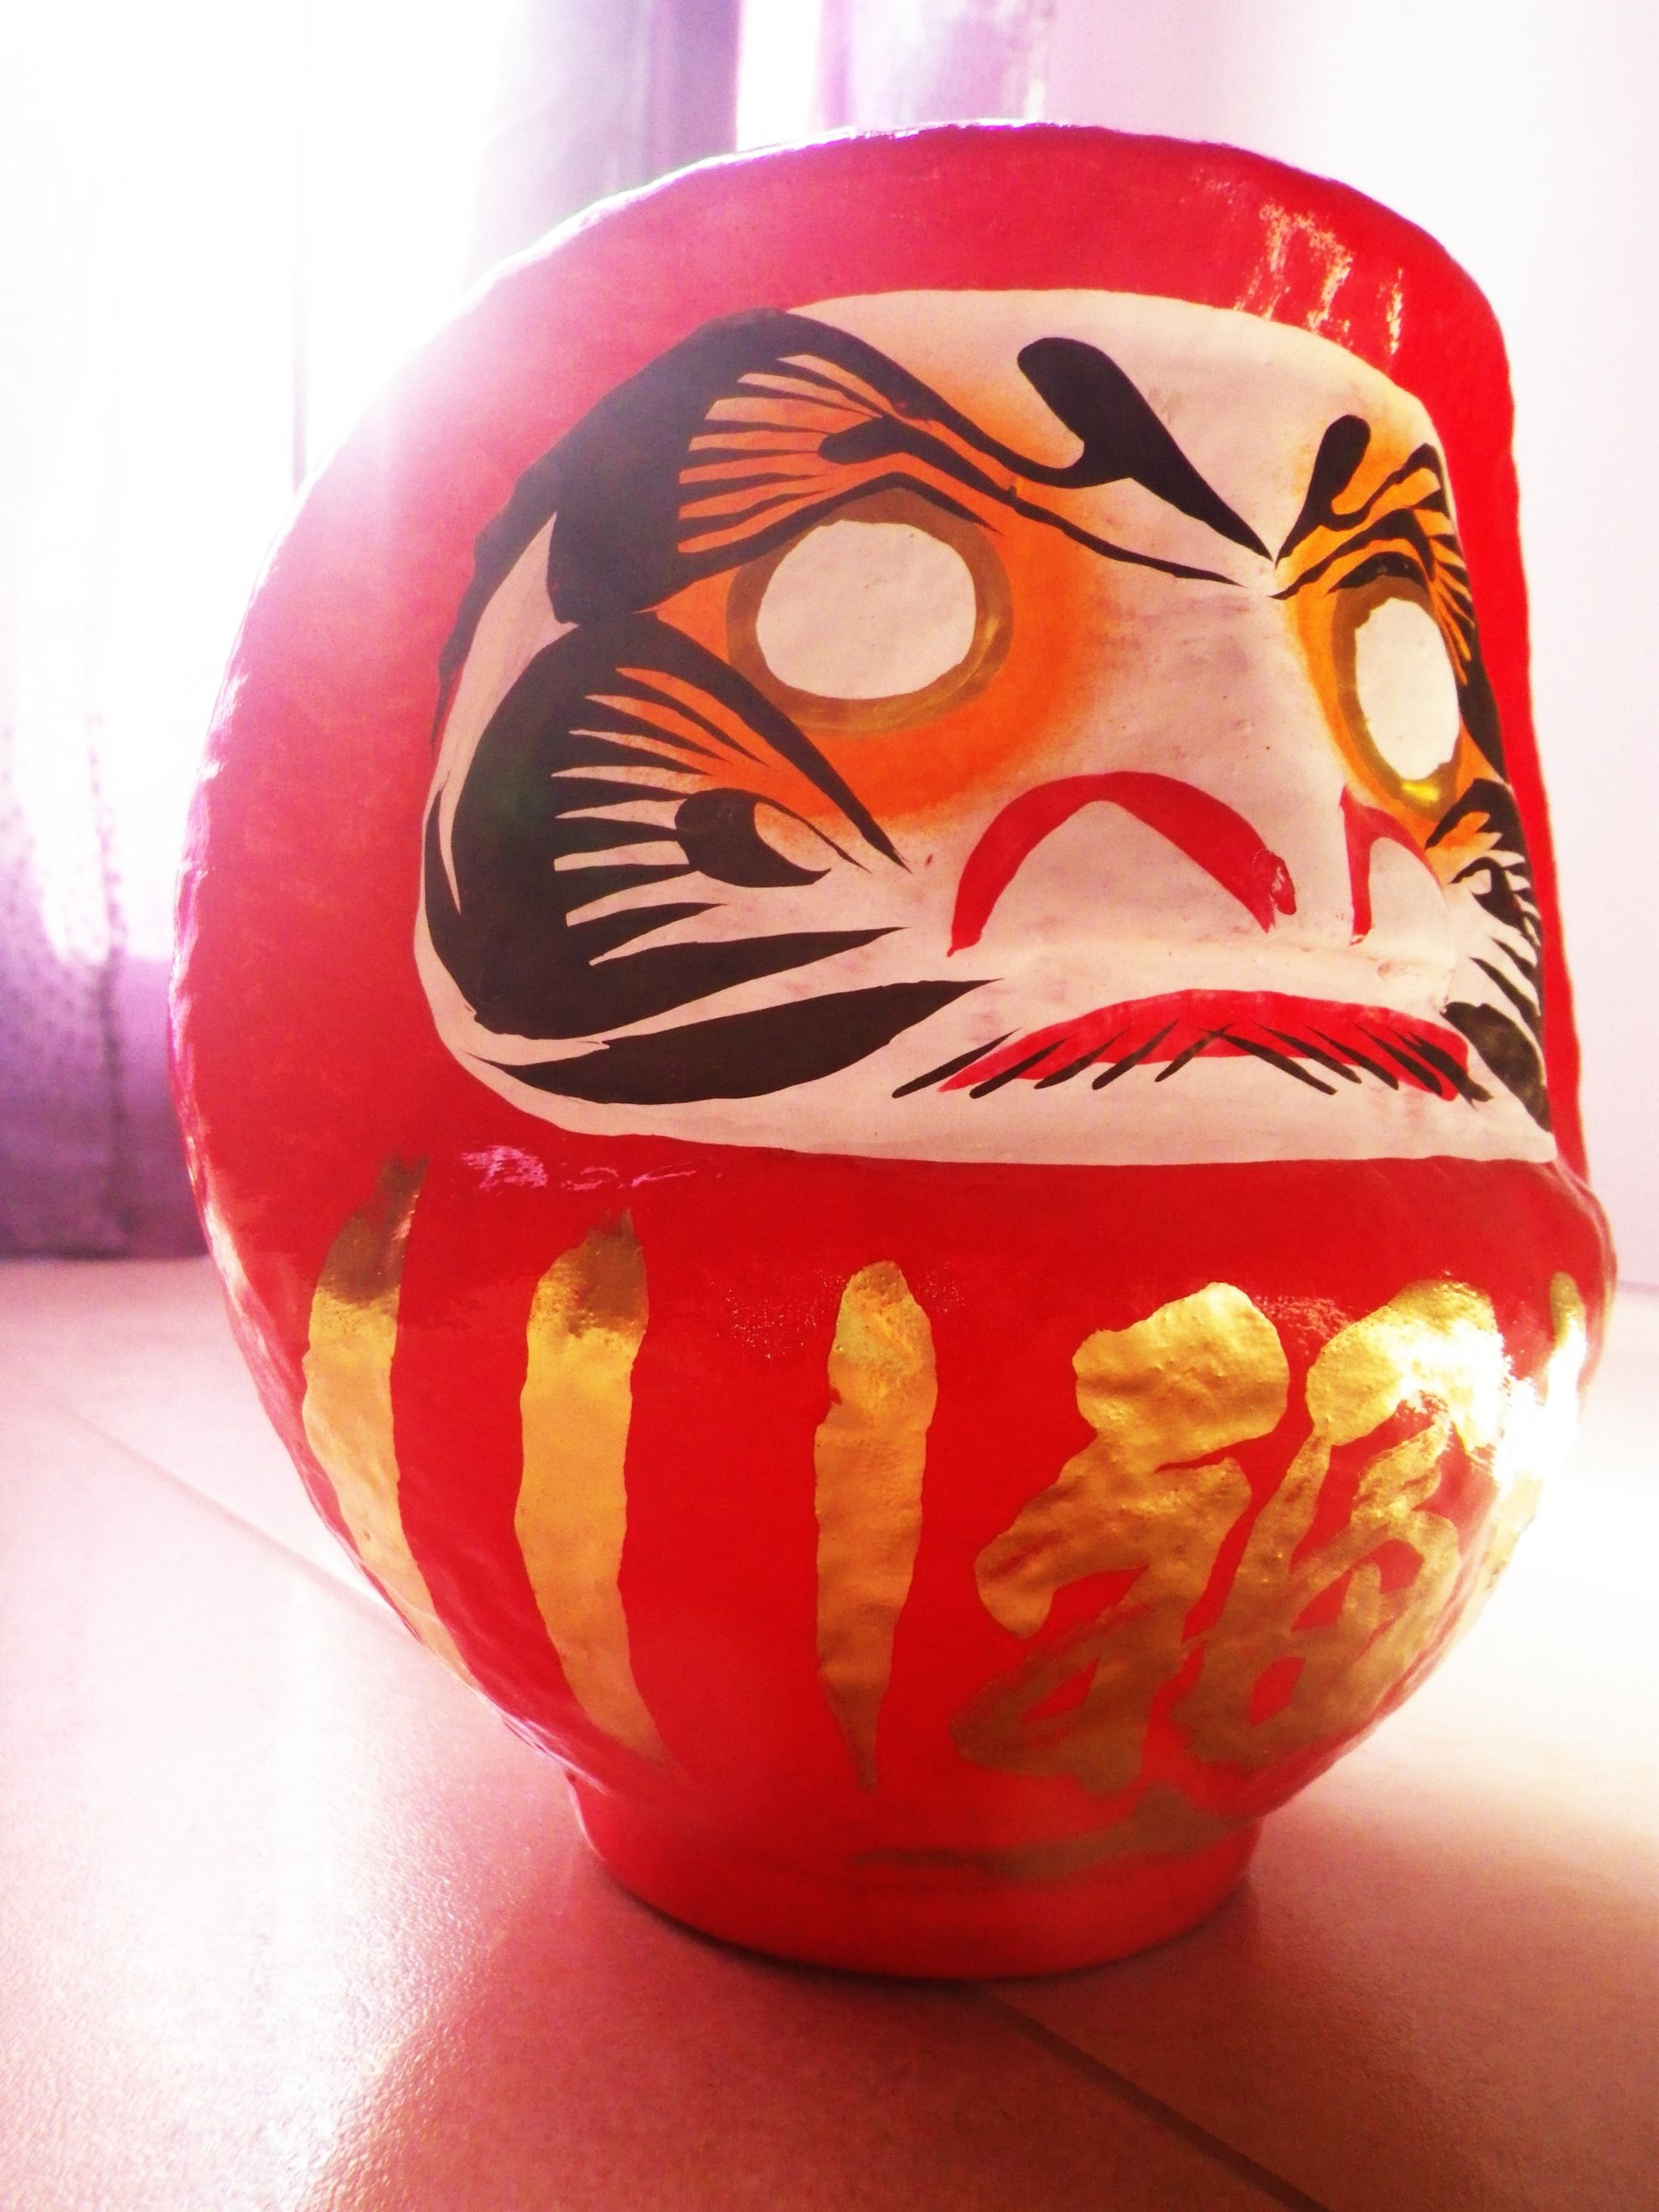 The daruma can be used as a voodoo doll?